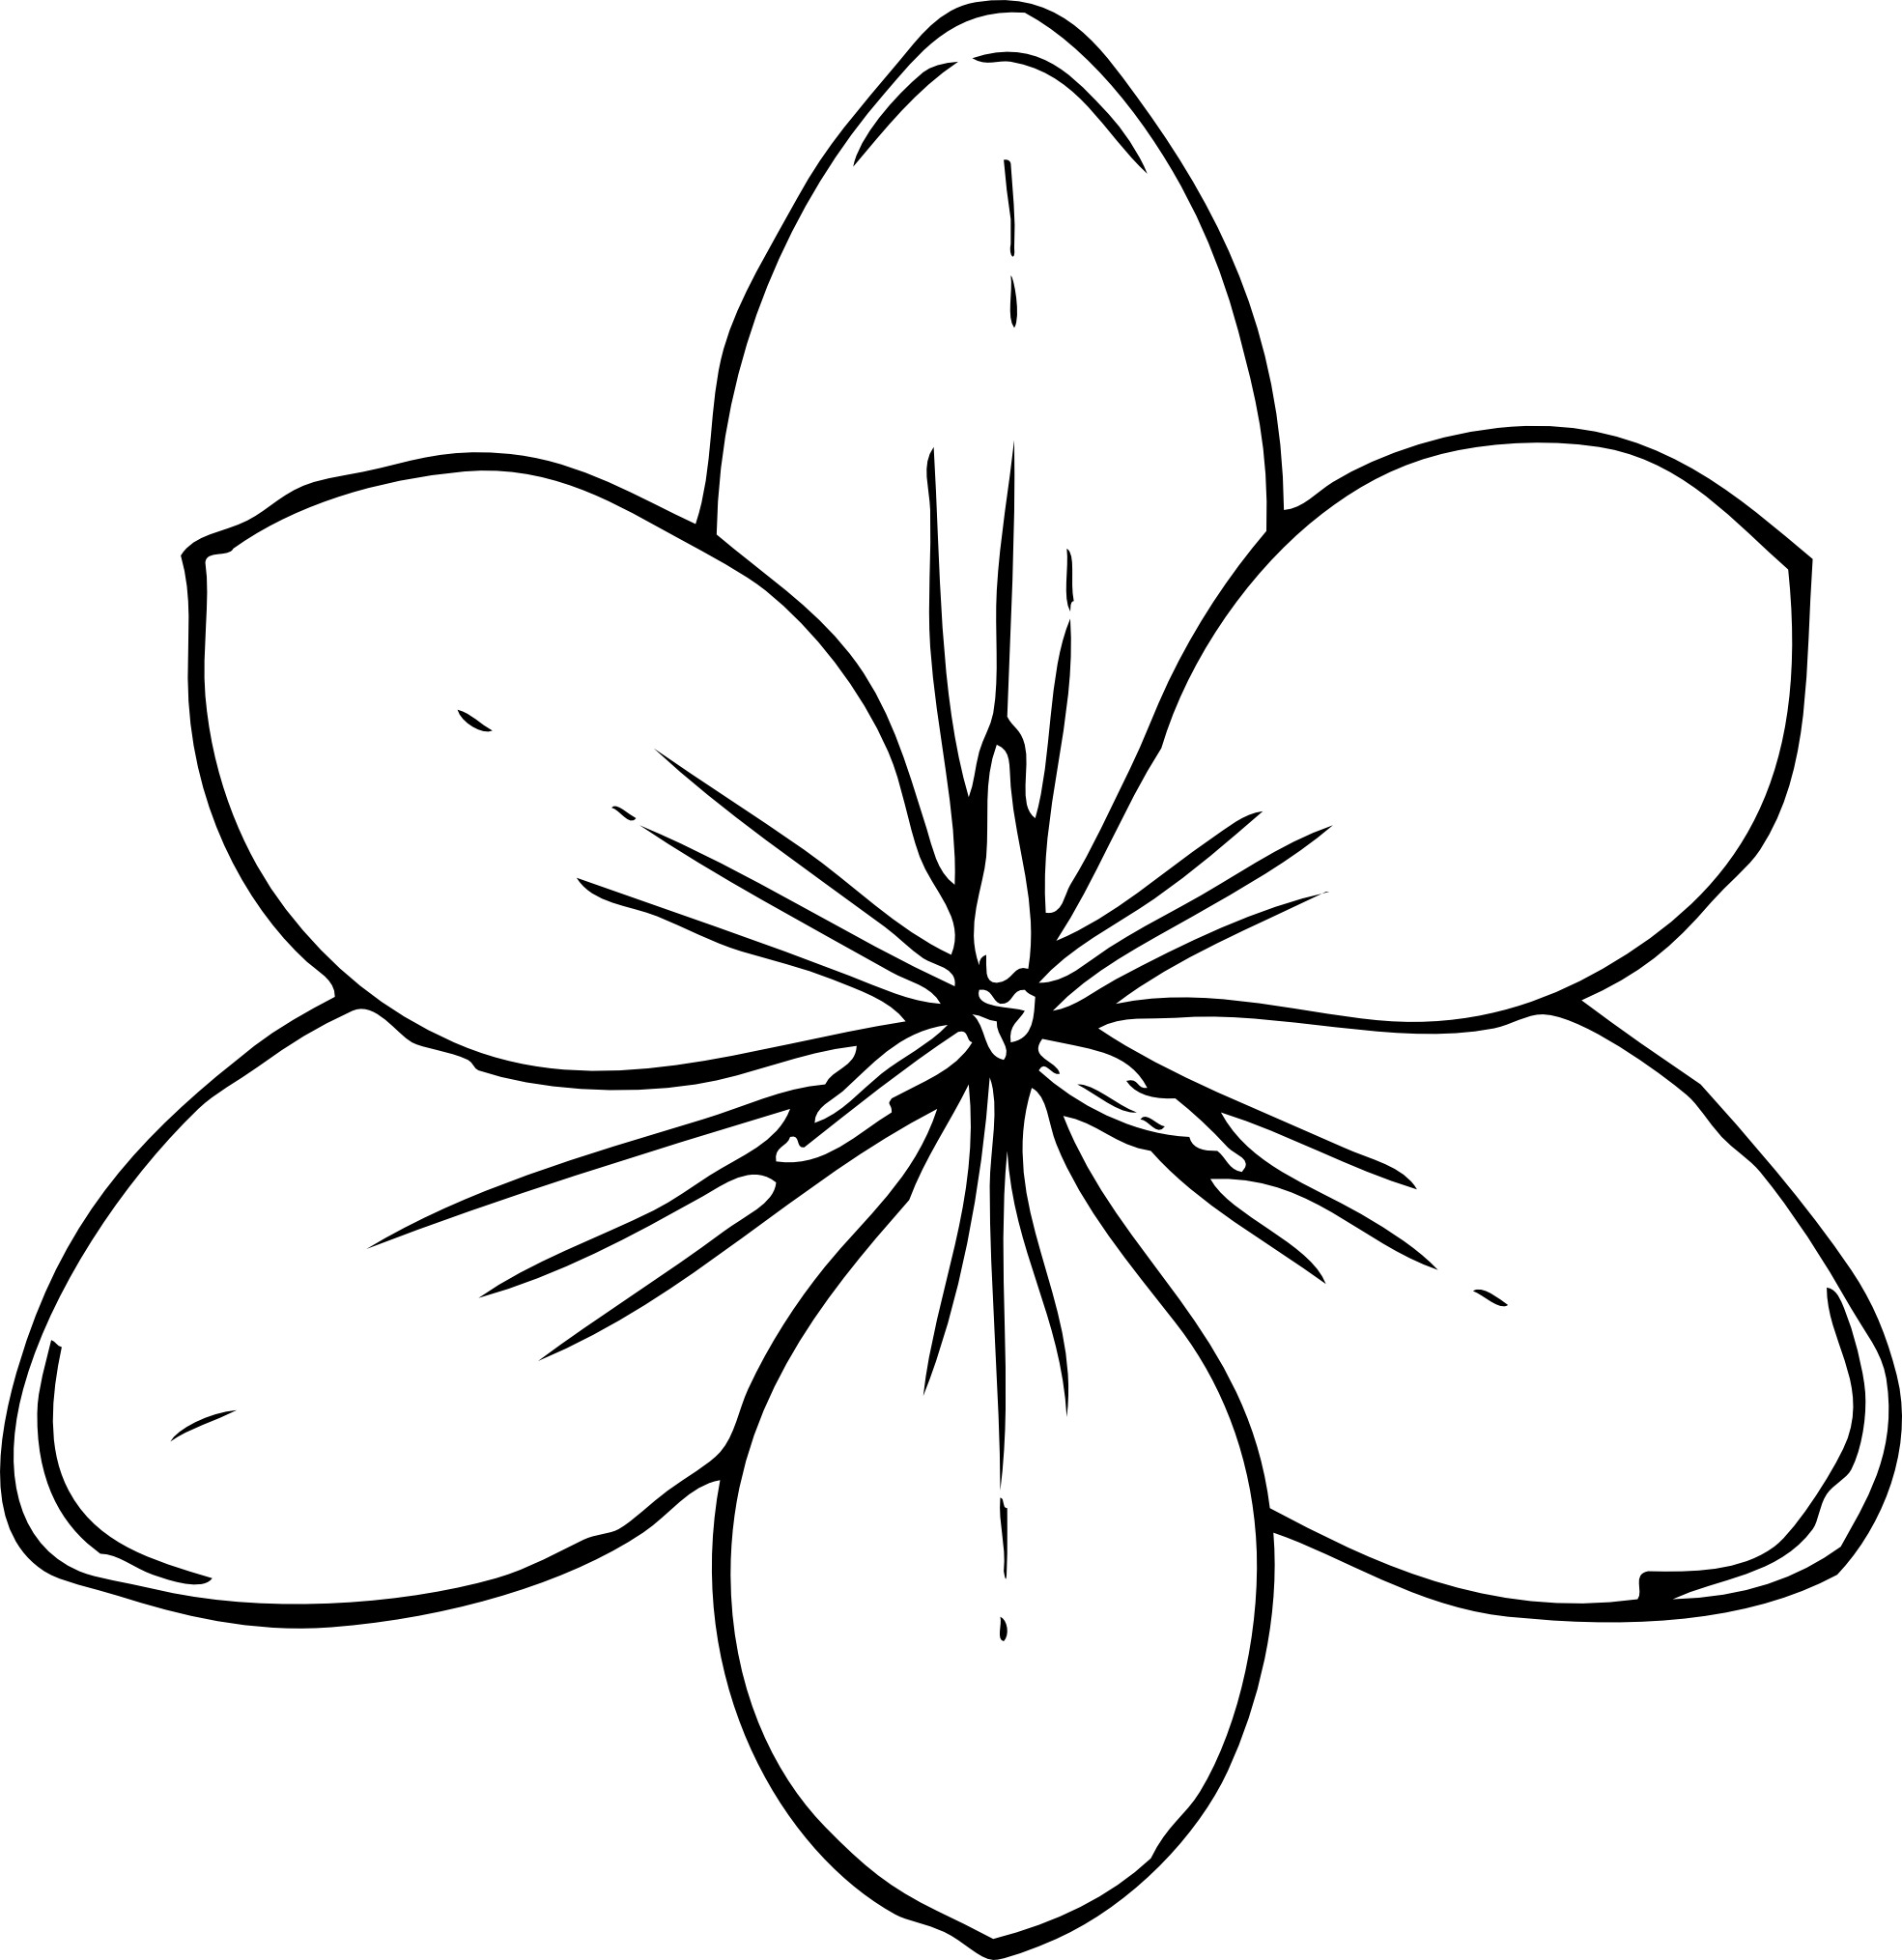 Line Art Flowers Images : Flower line art clipart best